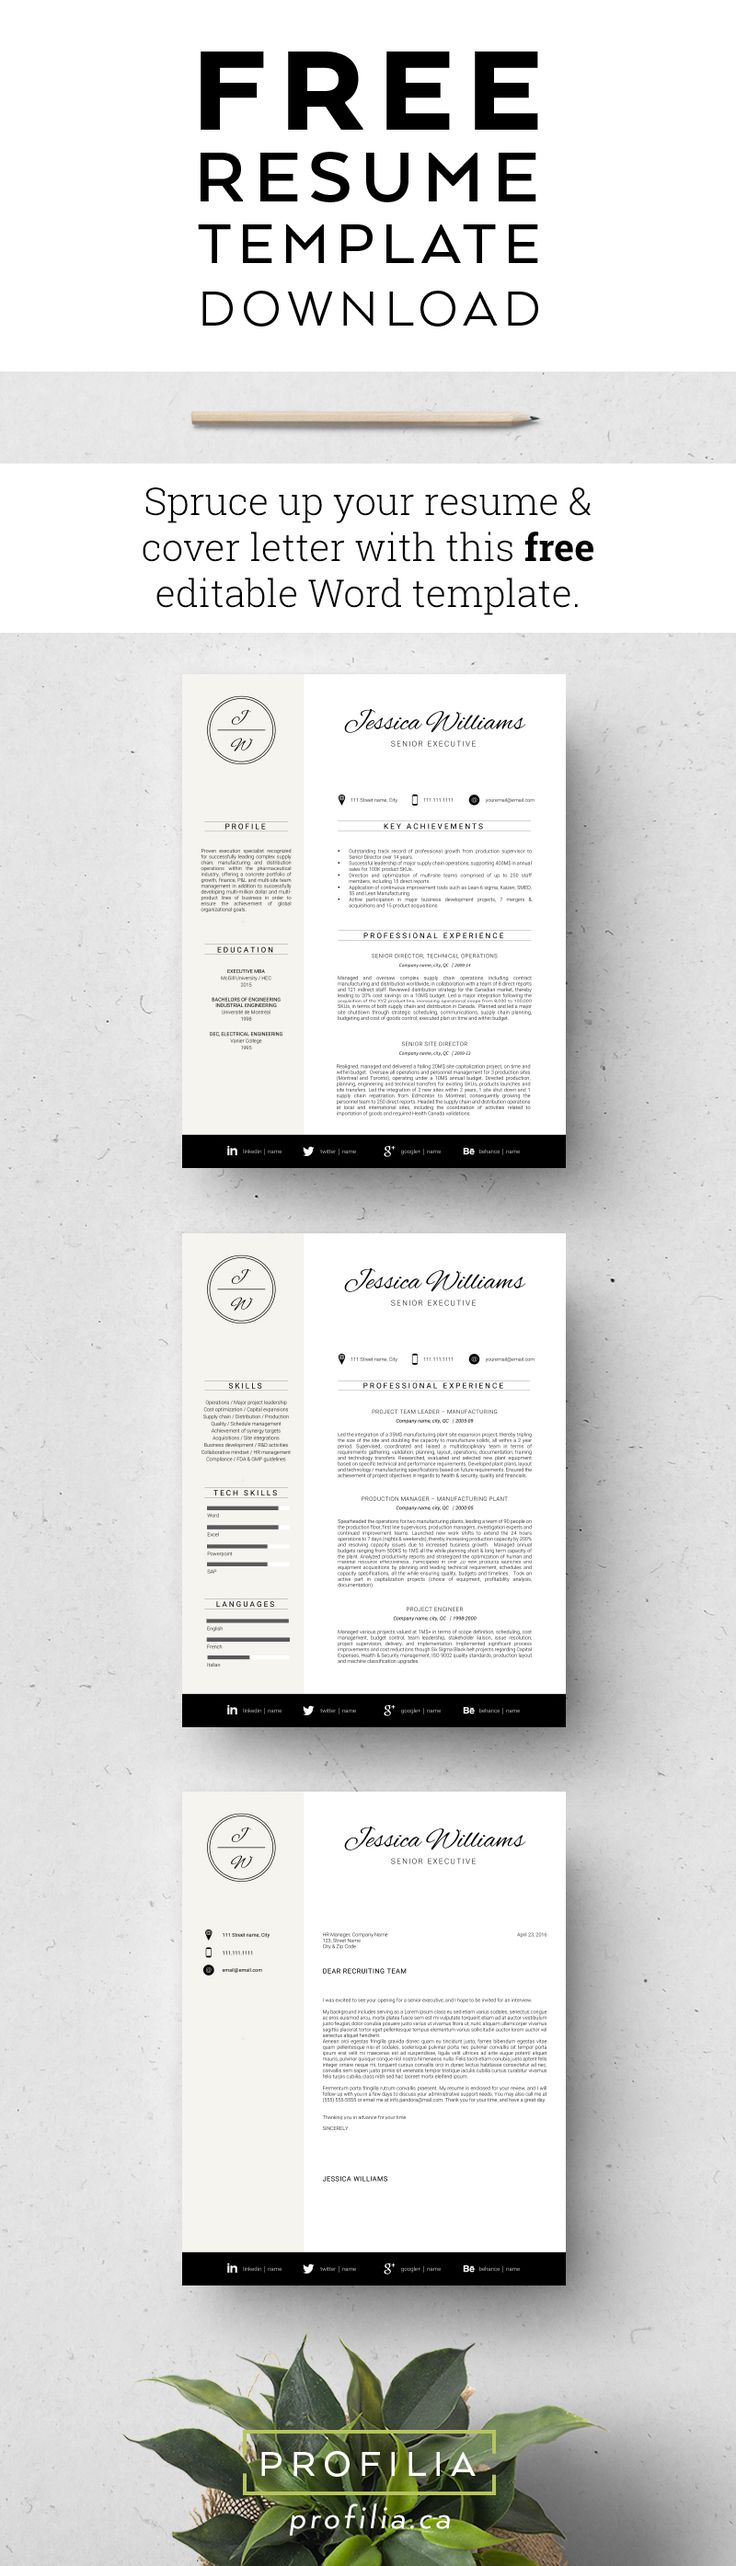 free resume template refresh your job search with this free resume cover - Template Resume Cover Letter